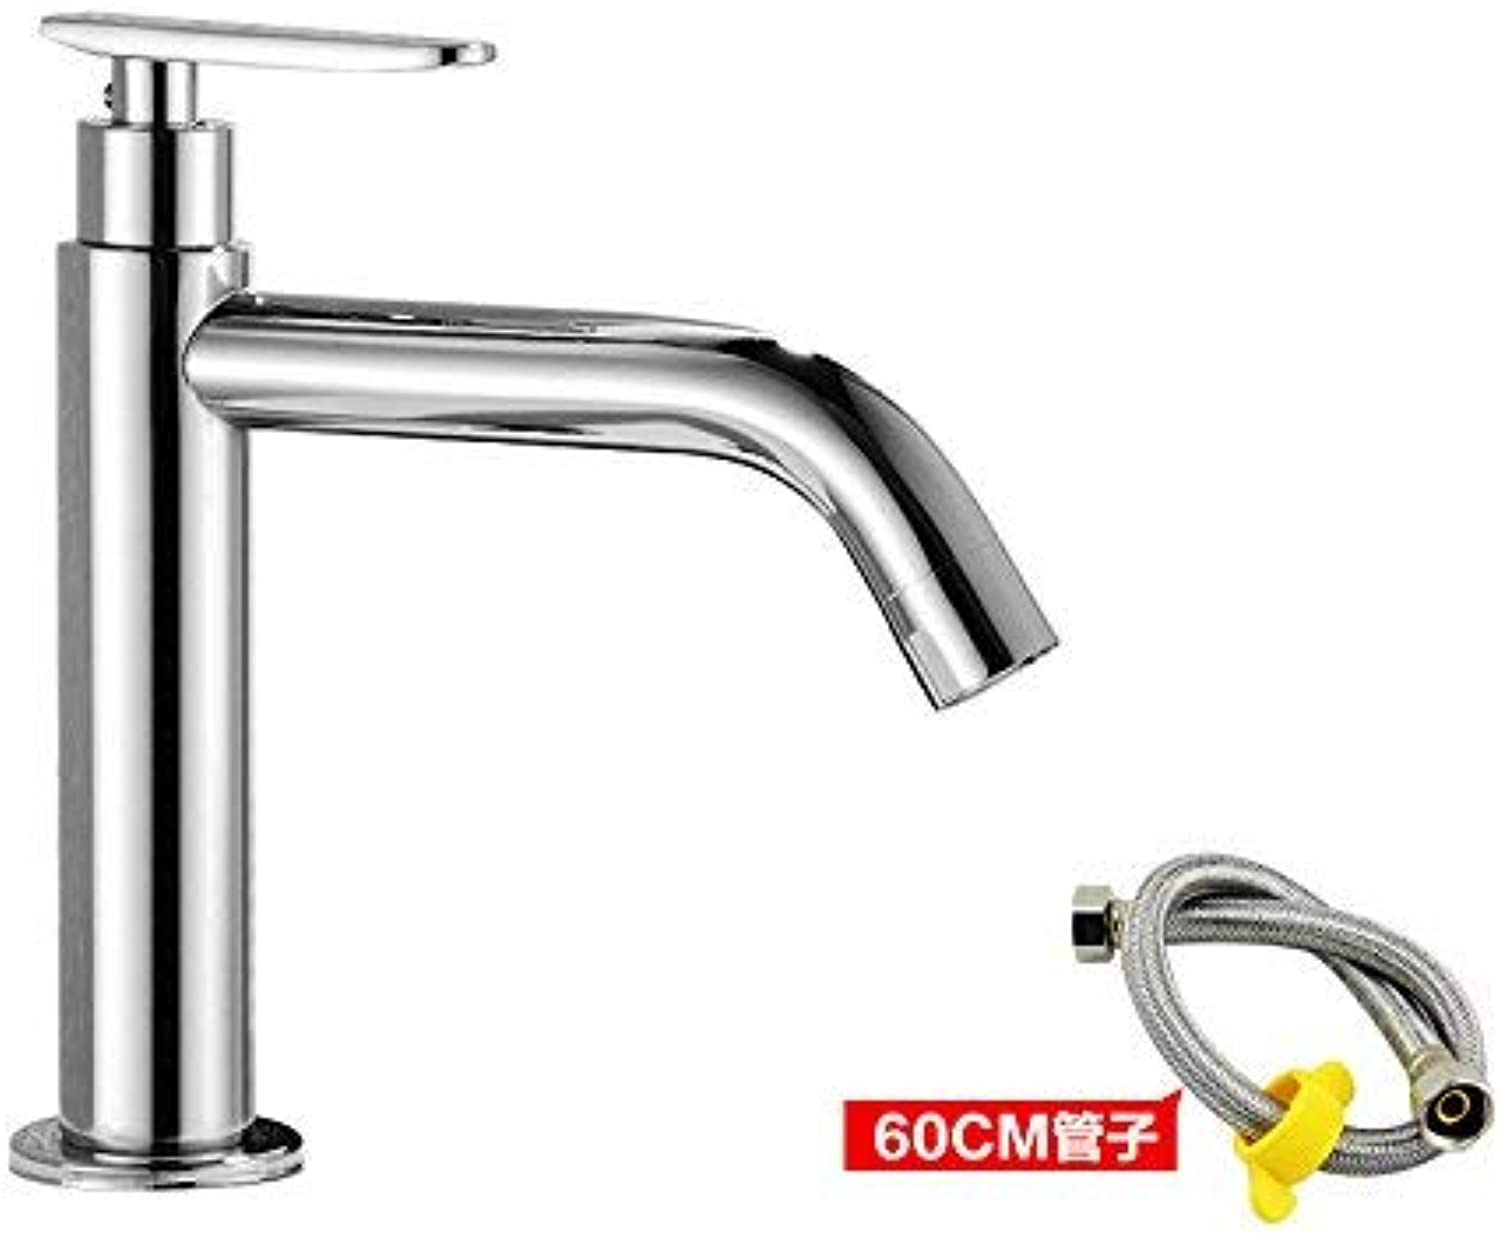 Oudan 0K single cold water basin water taps the cold water taps toilets with high surface basin mixer art lowered basin stainless steel basin +80cm,A3- lowered the tap water inlet pipe (color   2)